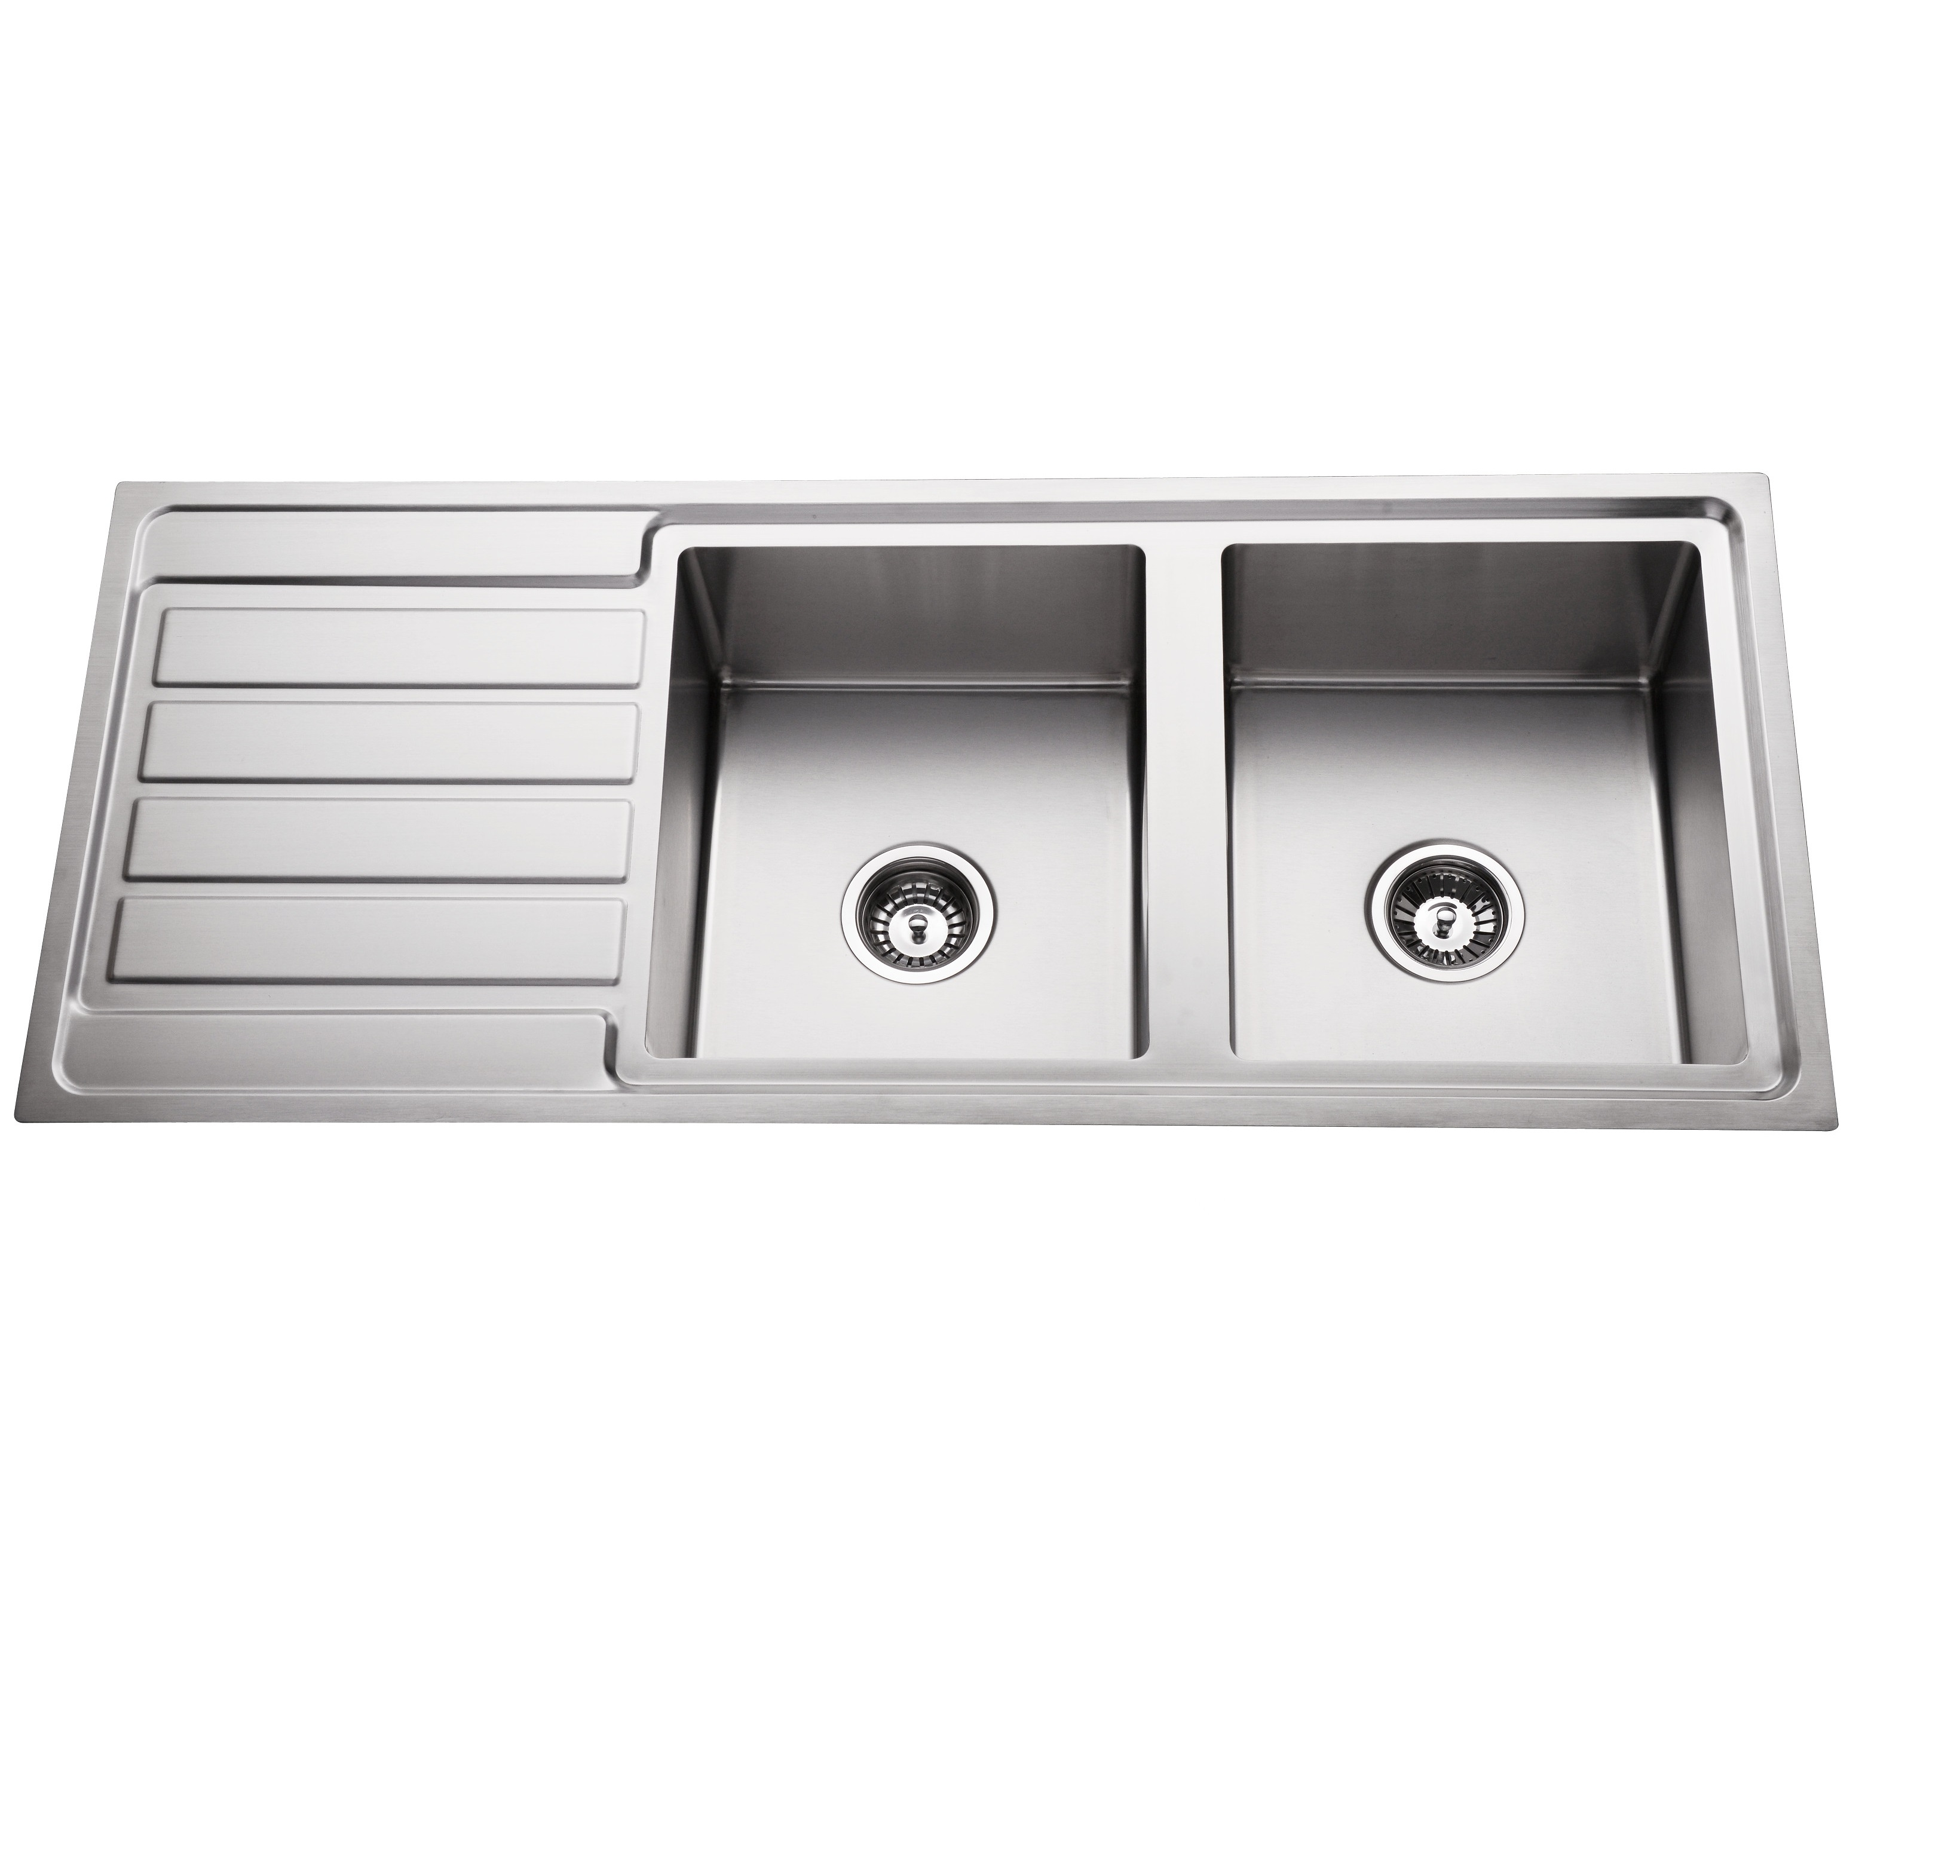 double kitchen sink storage shelf 304 stainless steel bowl top mount